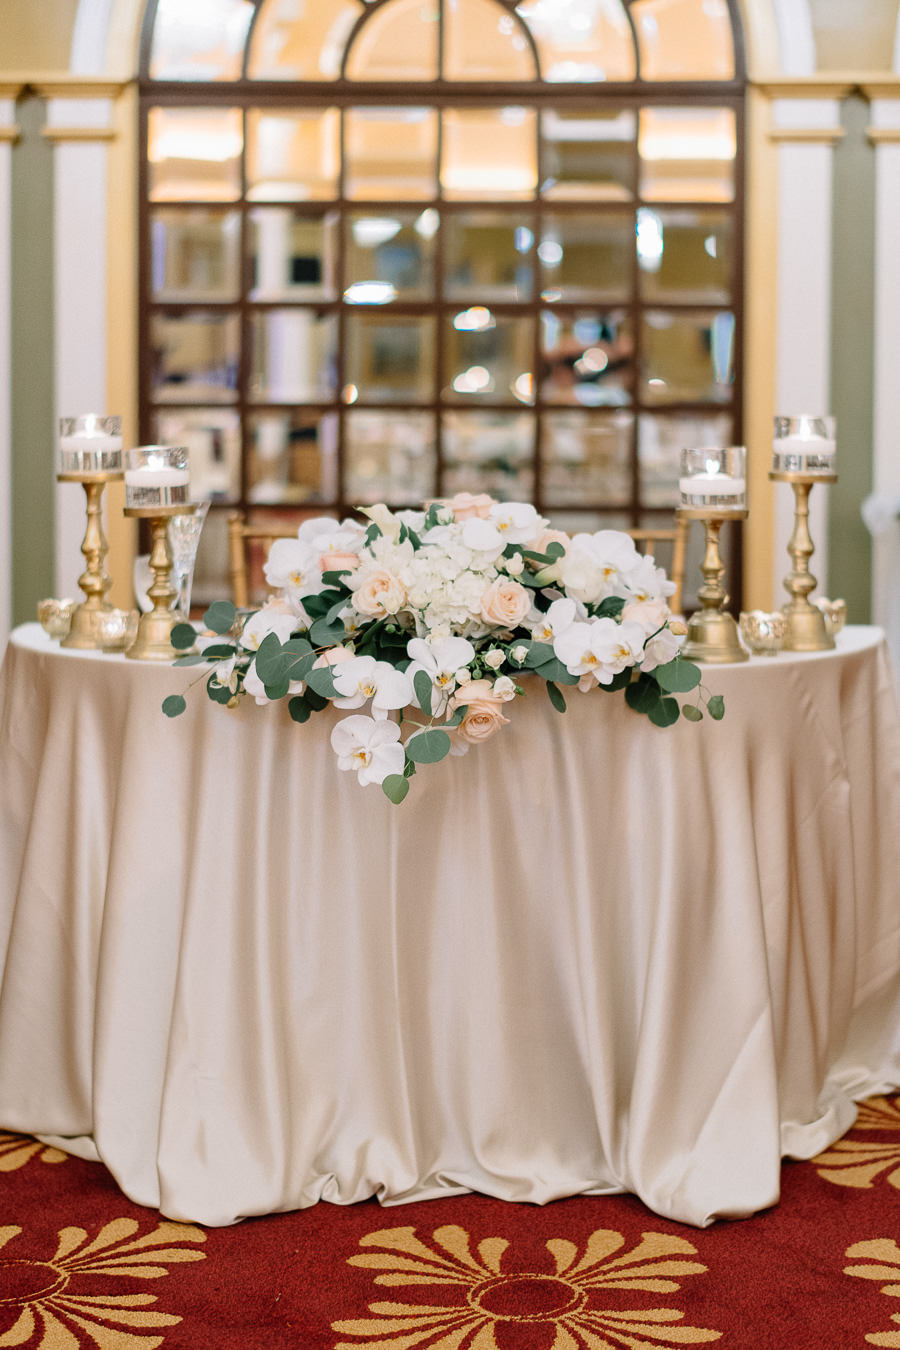 Elegant and Romantic Gold Blush and Ivory Wedding Reception Table Decor with Rose and Greenery Centerpiece and Tall Gold Candle Holders and Blush Linen